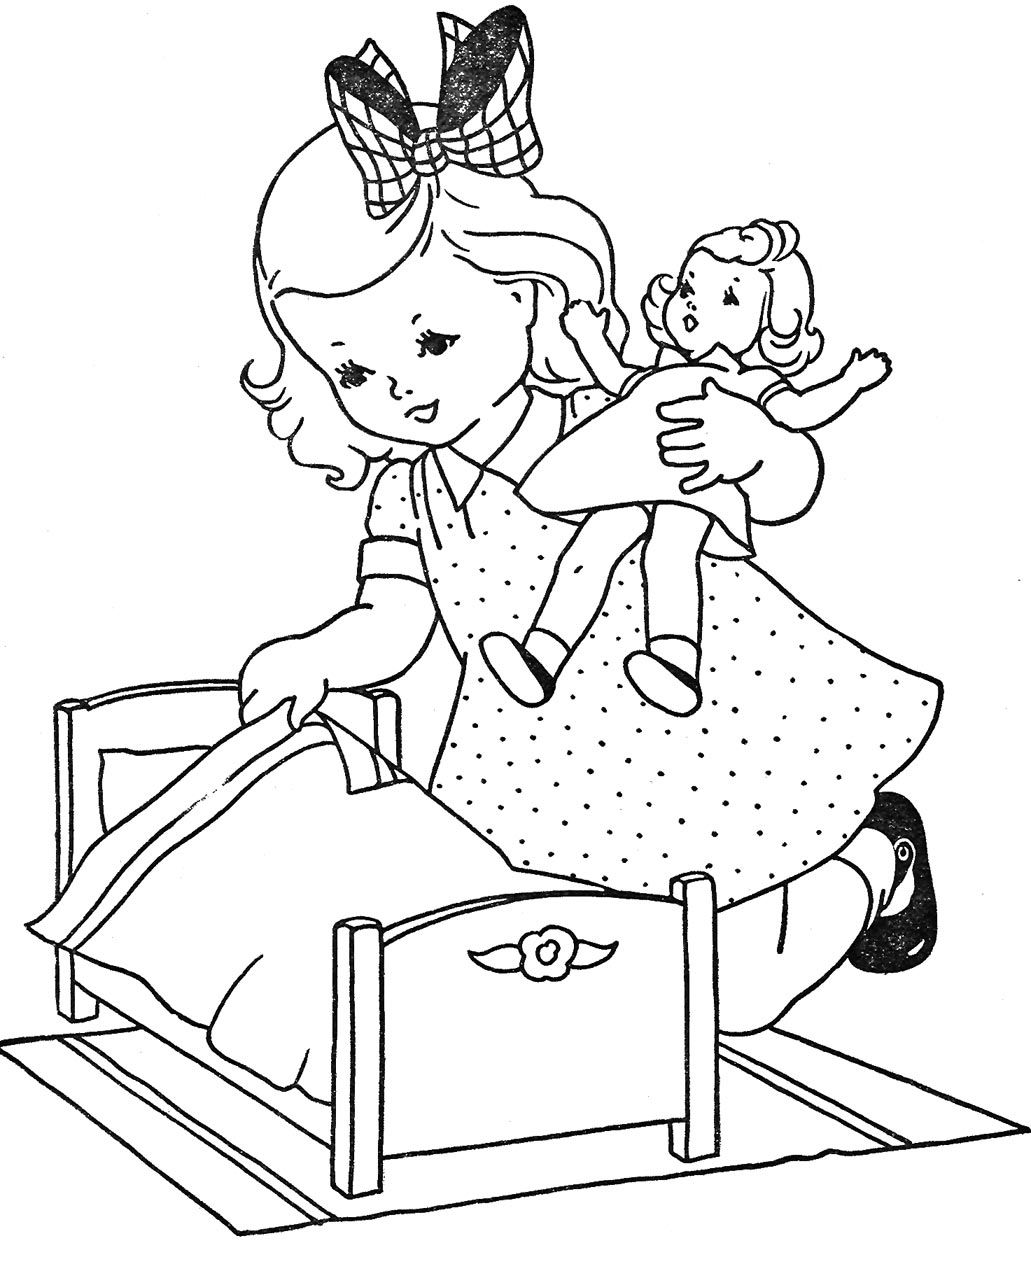 coloring doll print doll coloring pages to download and print for free print doll coloring